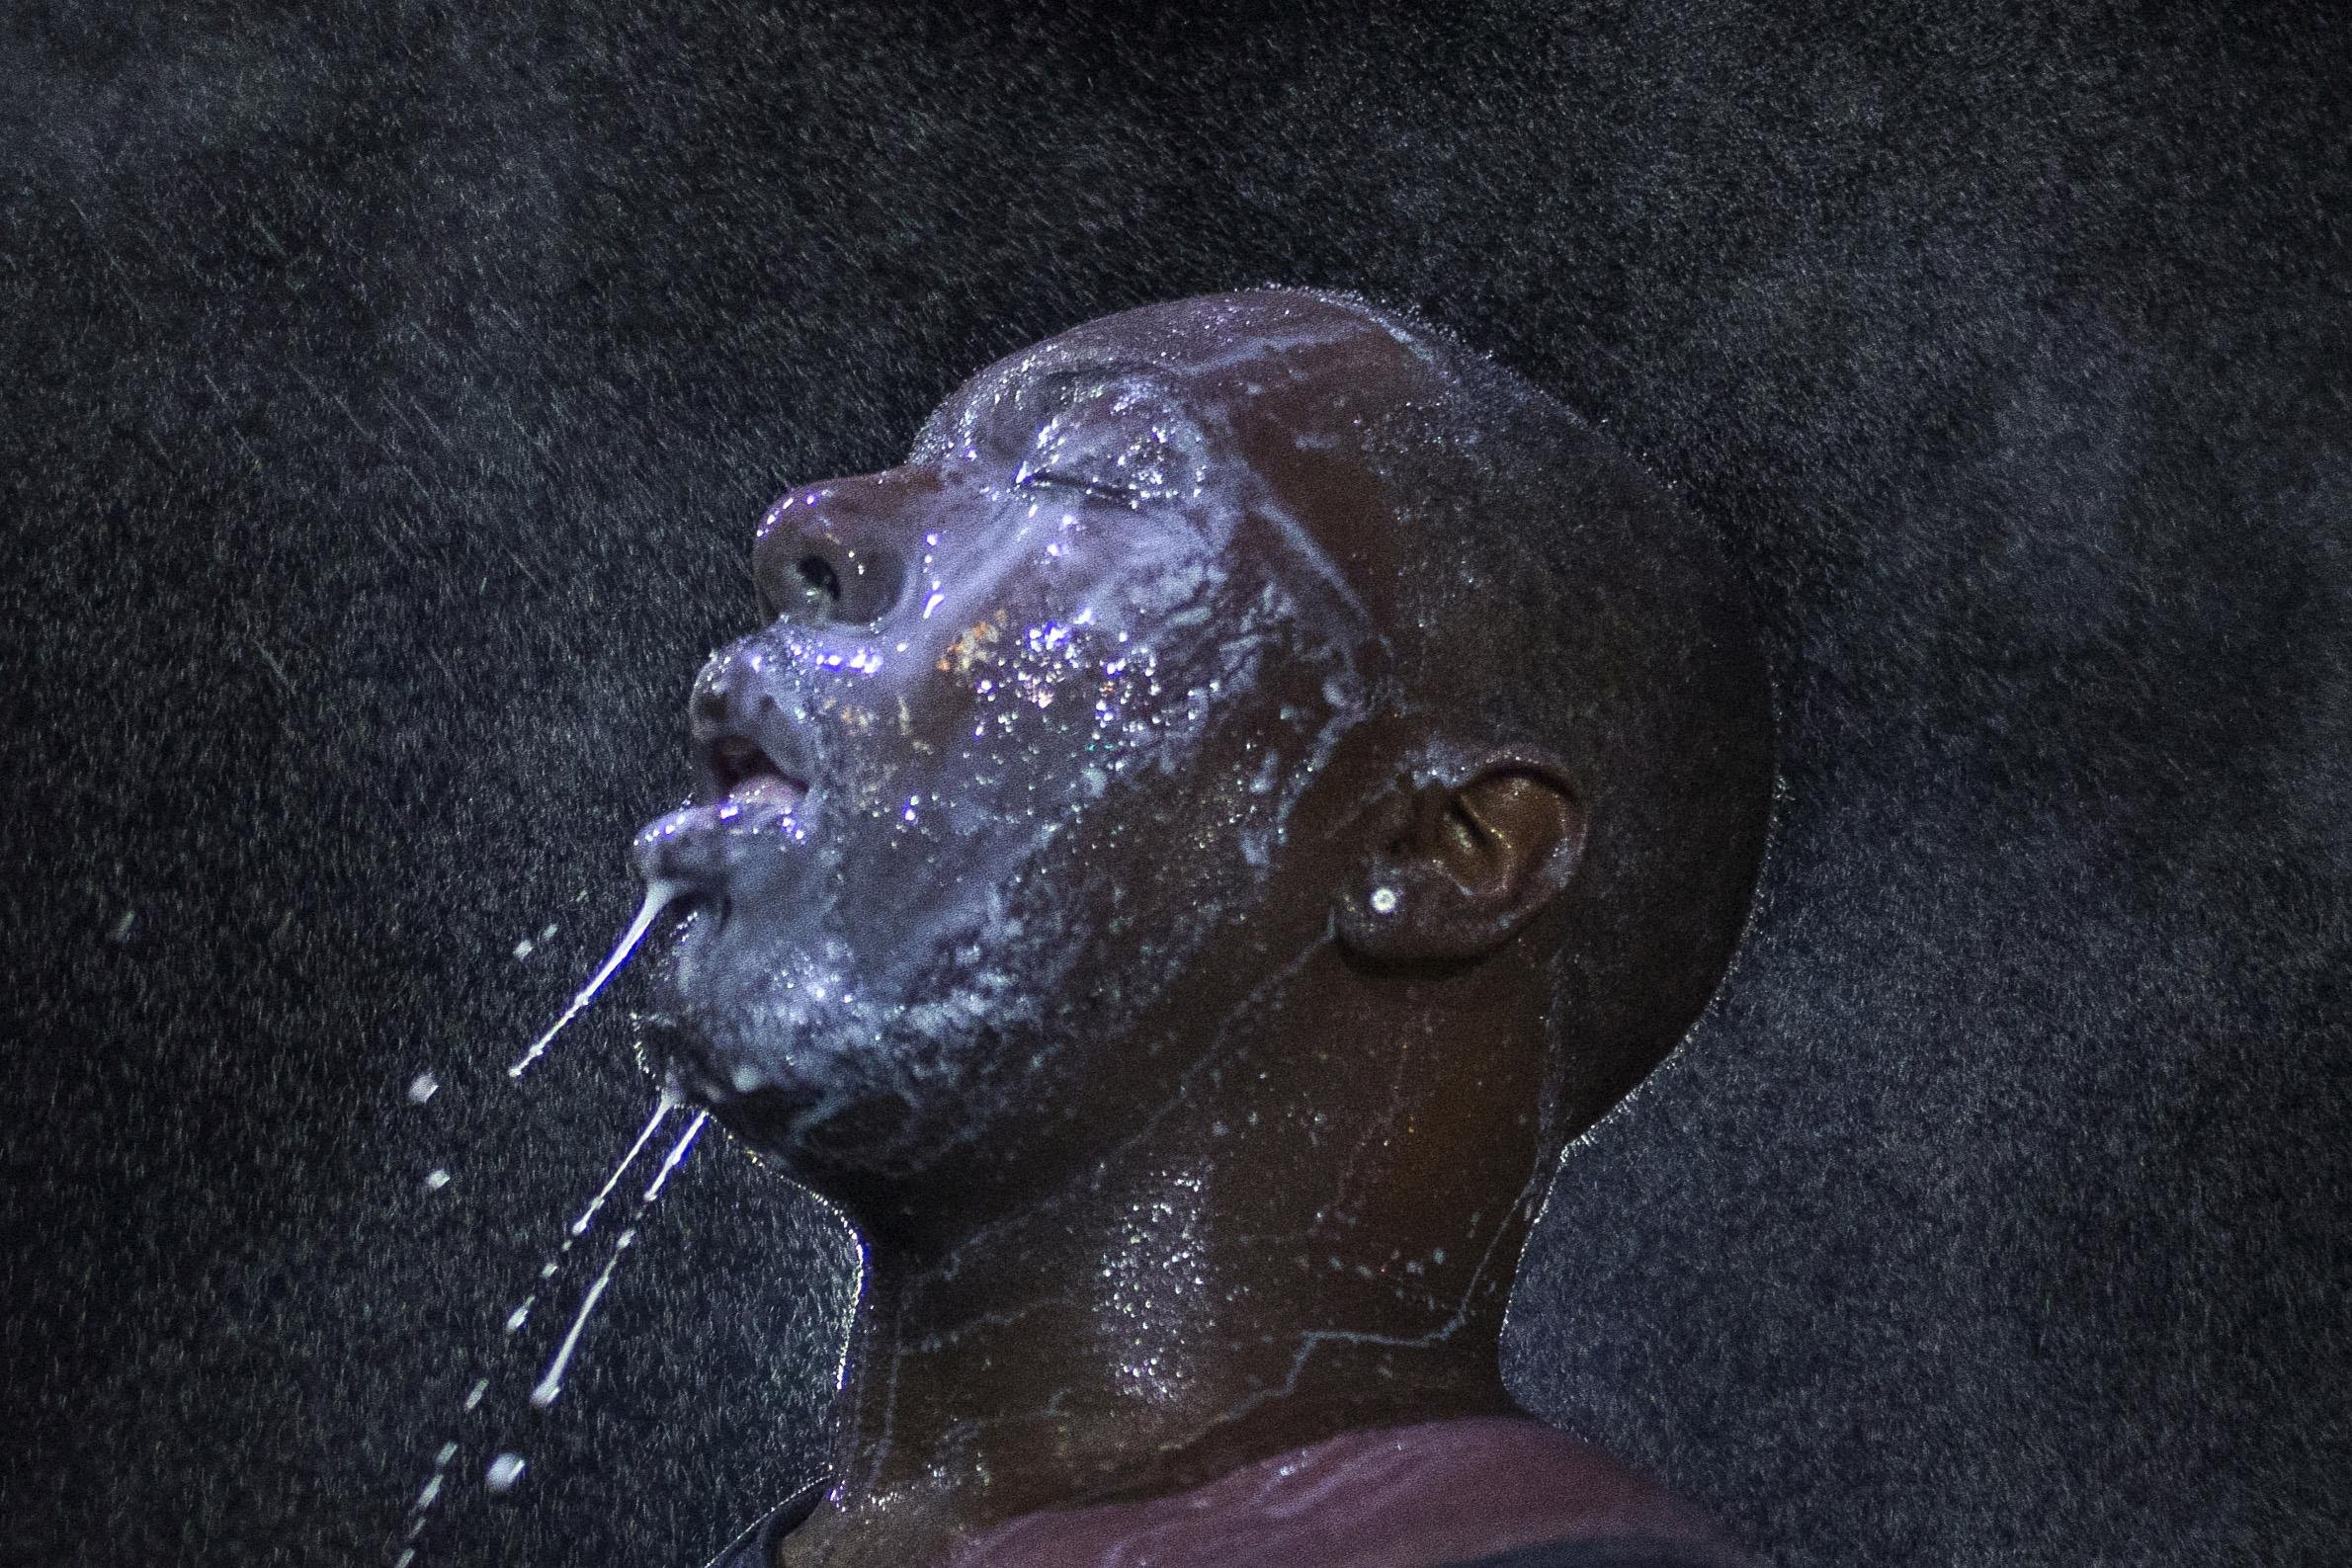 A man is doused with milk and sprayed with mist after being hit by an eye irritant from security forces trying to disperse demonstrators in Ferguson, Mo. early on Aug. 20, 2014.